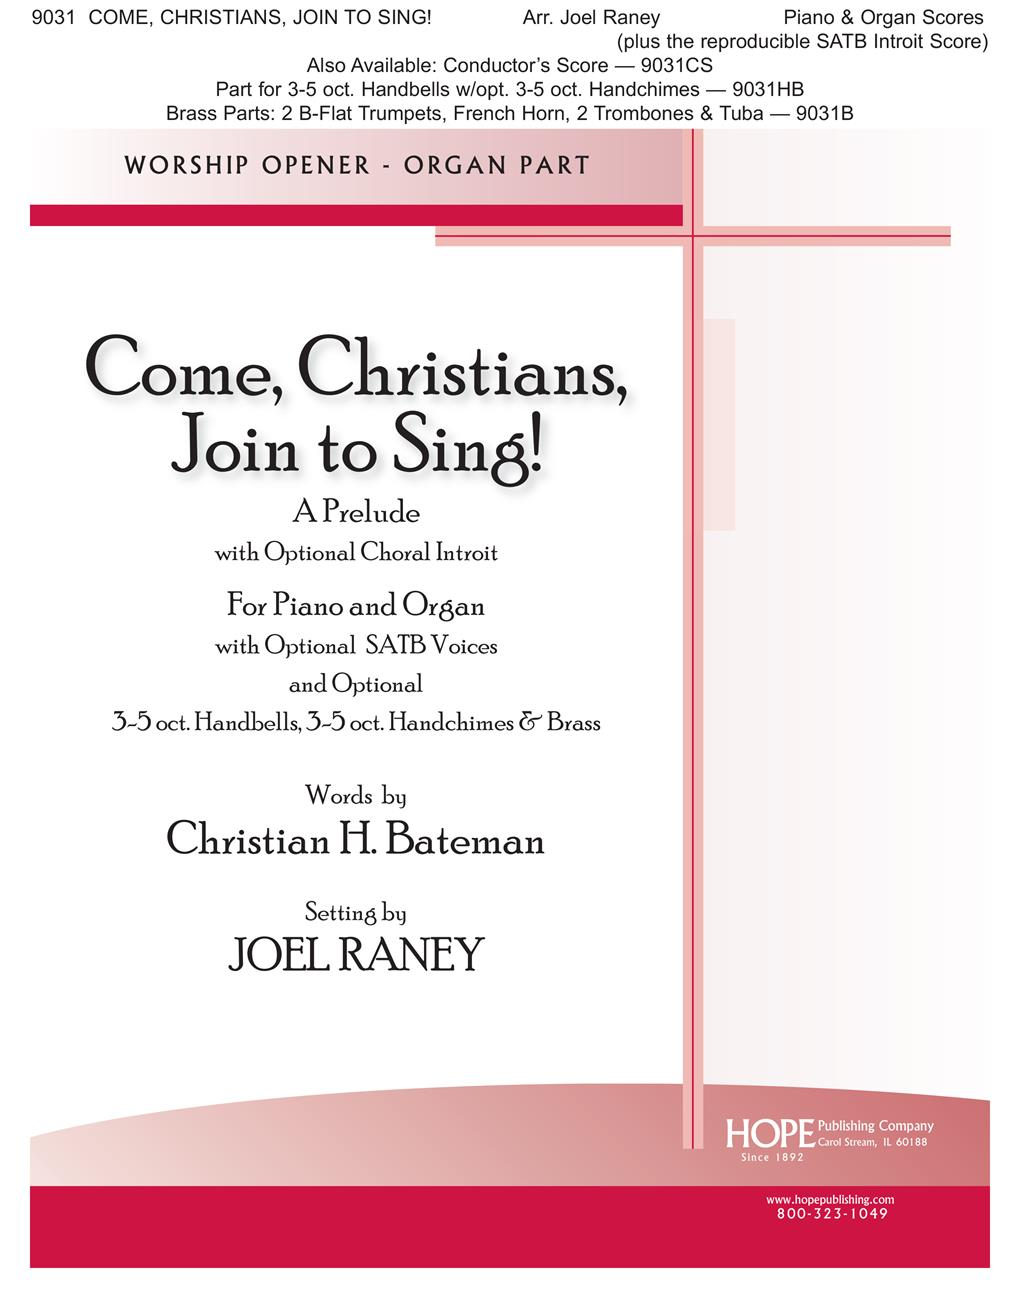 Come Christians Join to Sing - Piano-Organ Duet Cover Image